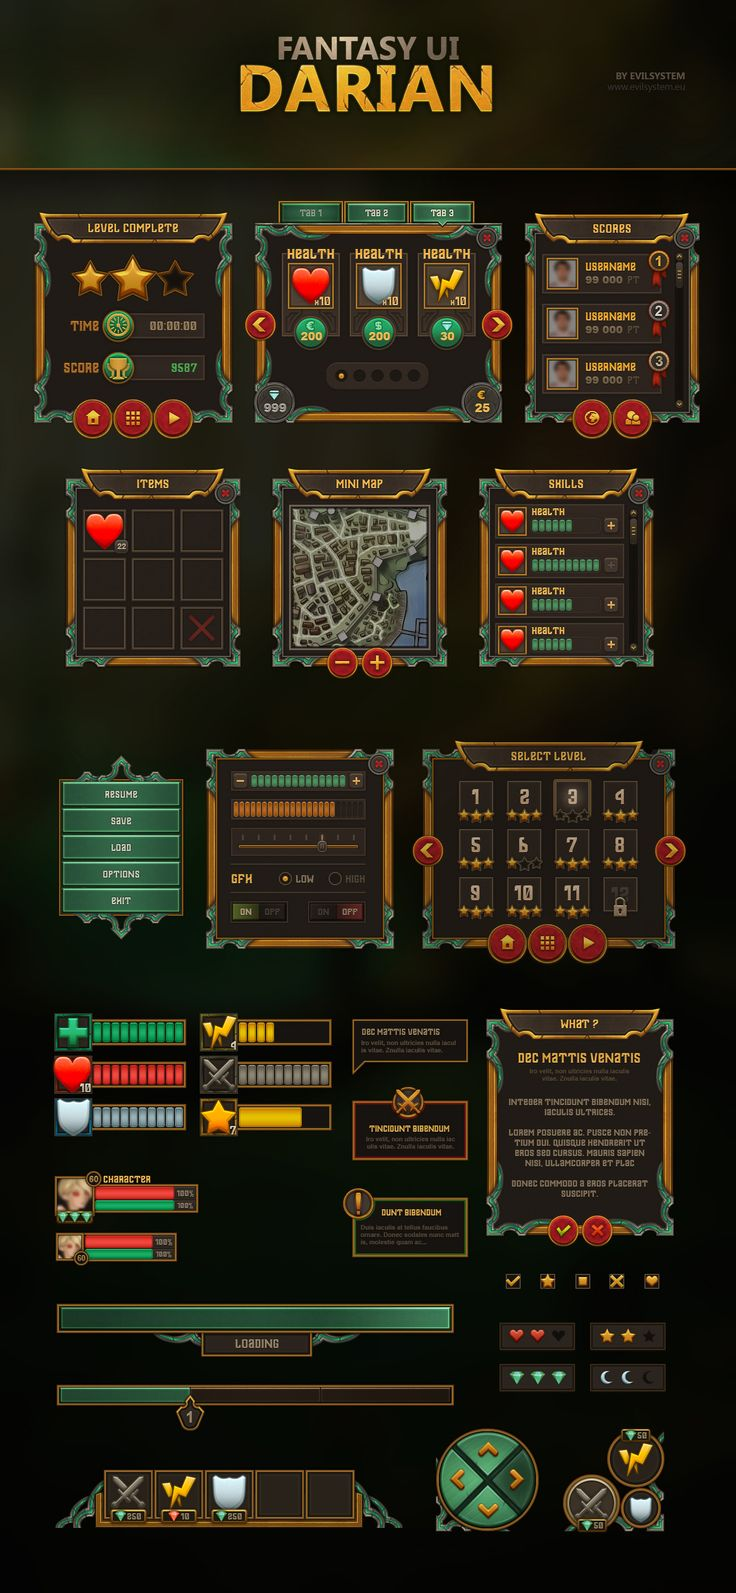 Fantasy UI - Darian by Evil-S on DeviantArt